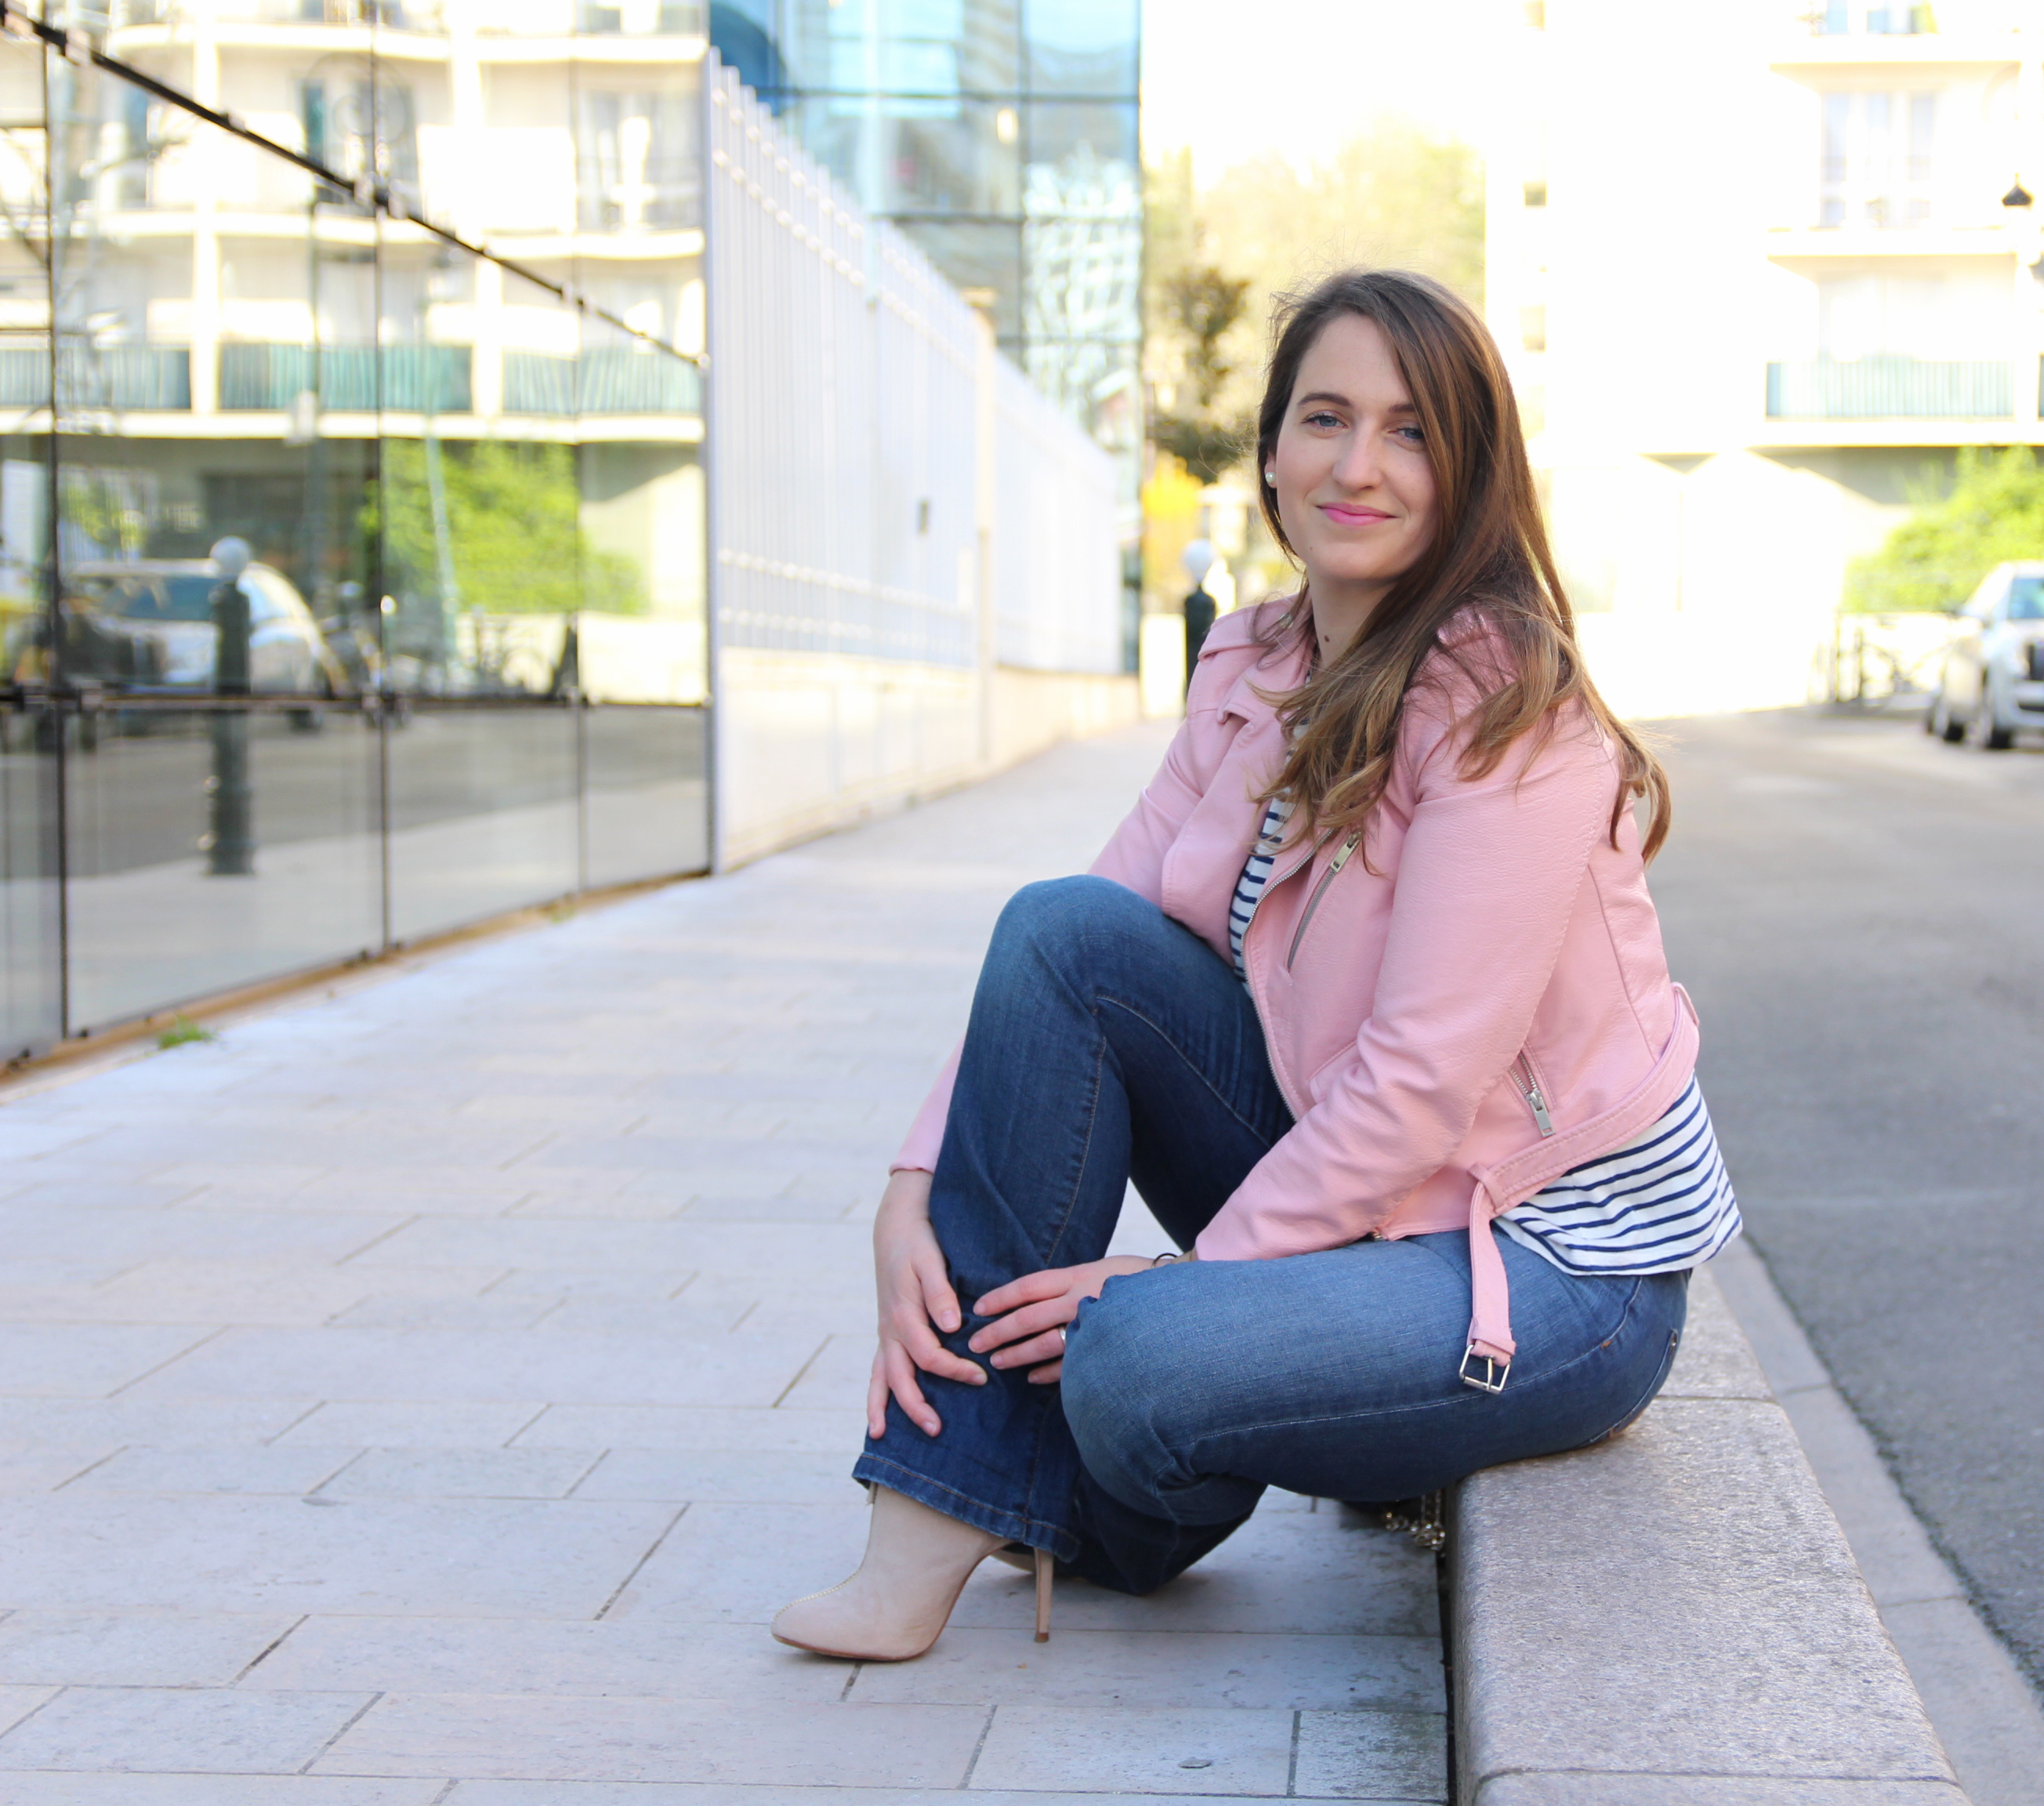 perfecto-rose-zara-marinniere-denim-influencer-fashion-ottd-look-seralynepointcom-paris-IMG_6975